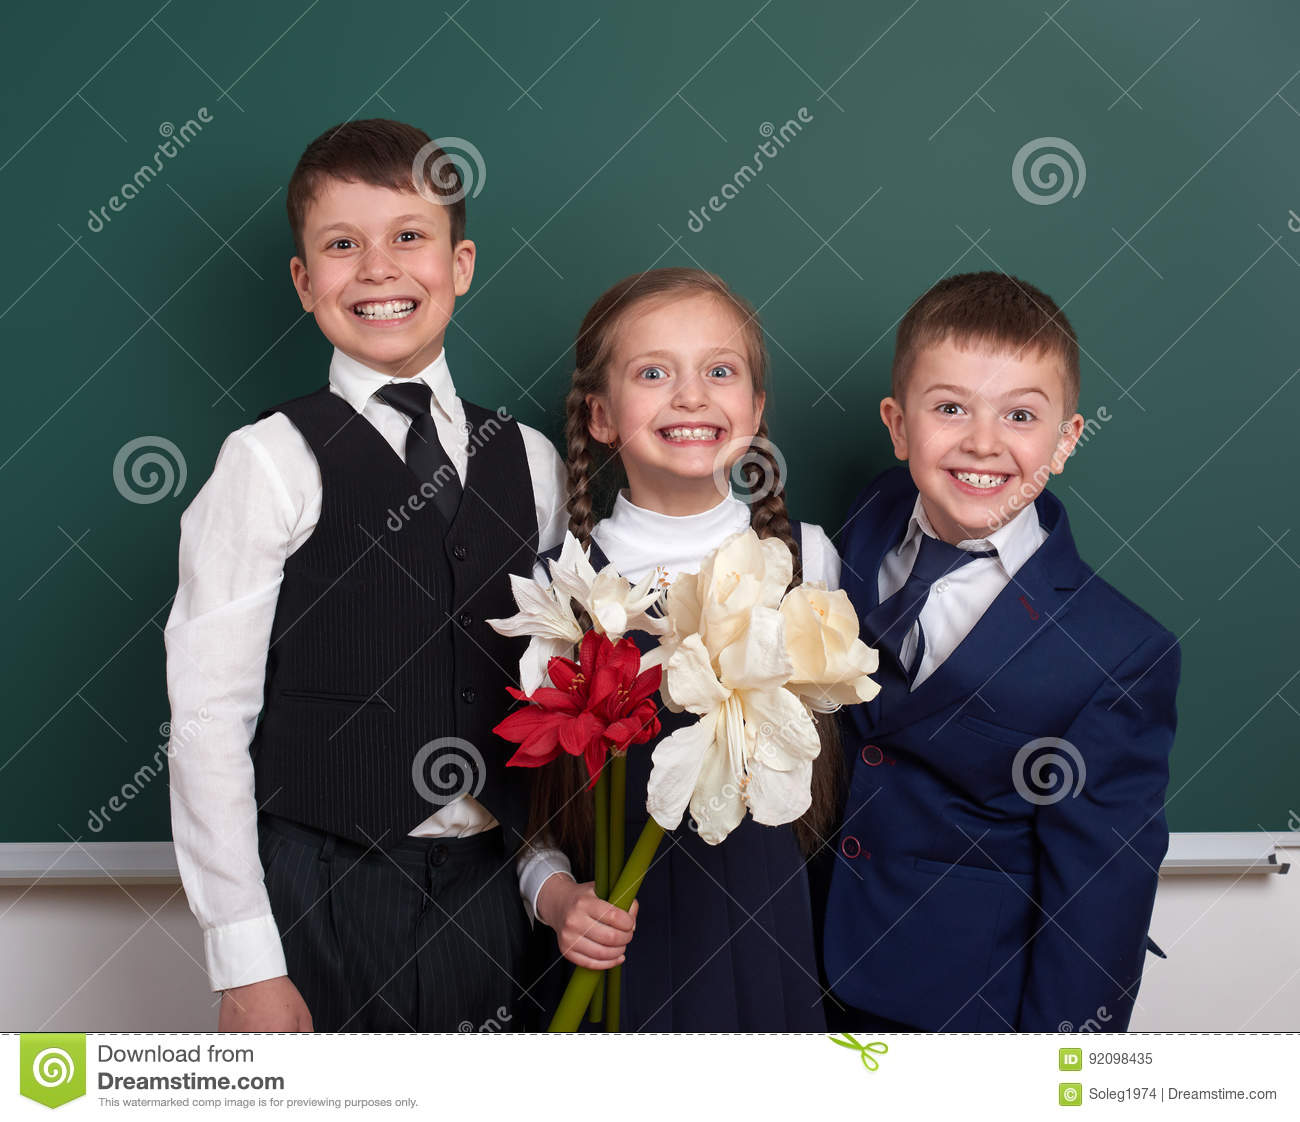 Boys giving girl flowers, elementary school child near blank chalkboard background, dressed in classic black suit, group pupil, ed